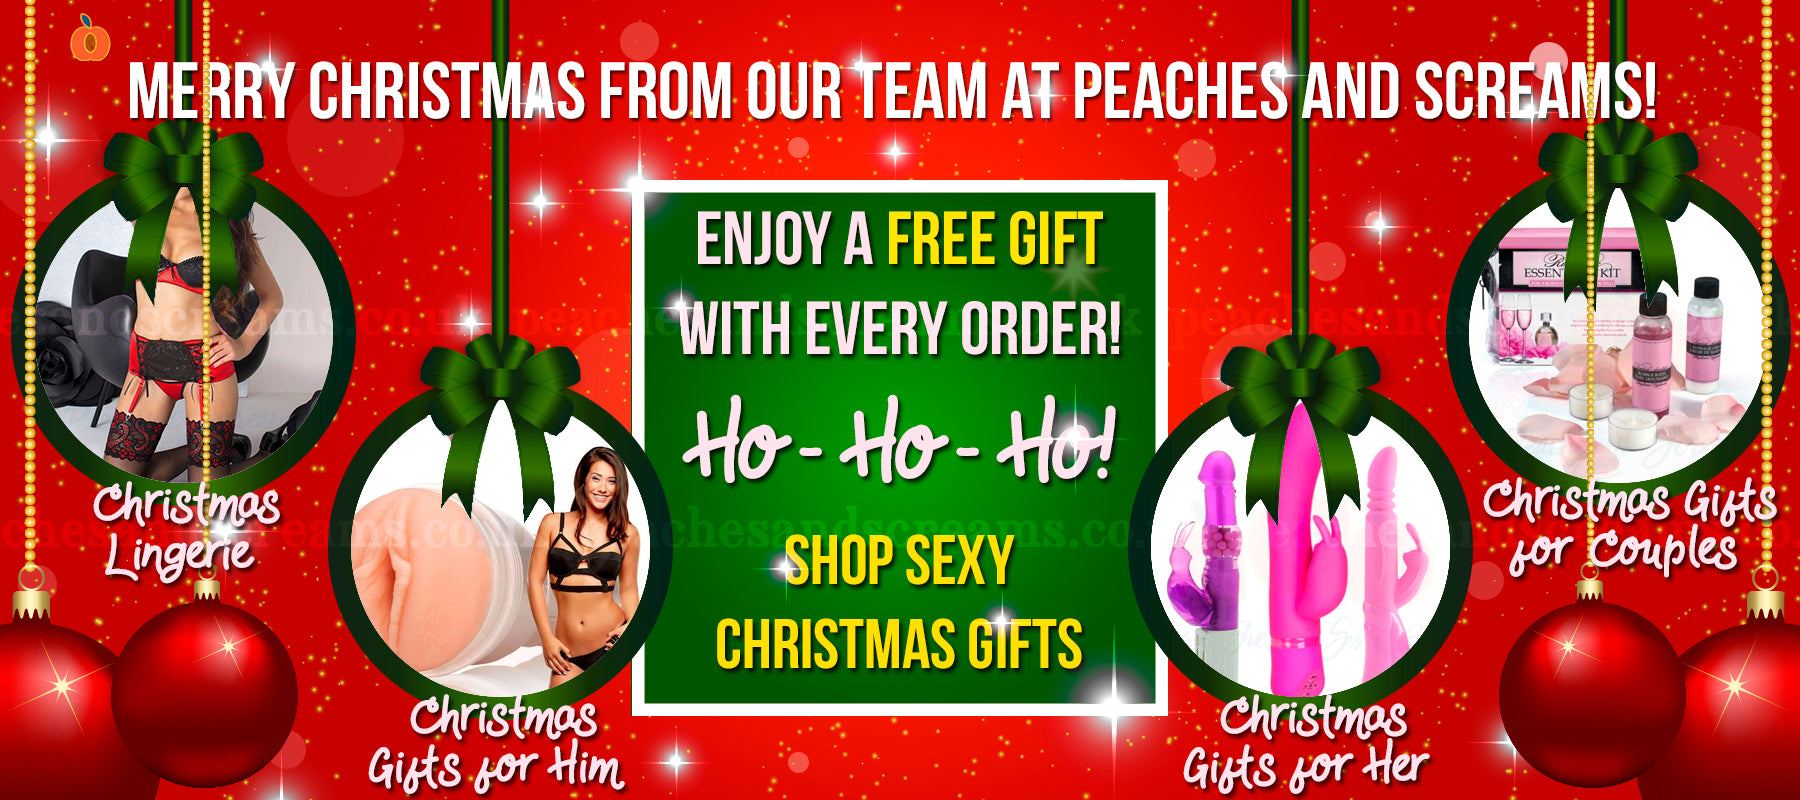 Sexy Christmas Gifts at Peaches and Screams